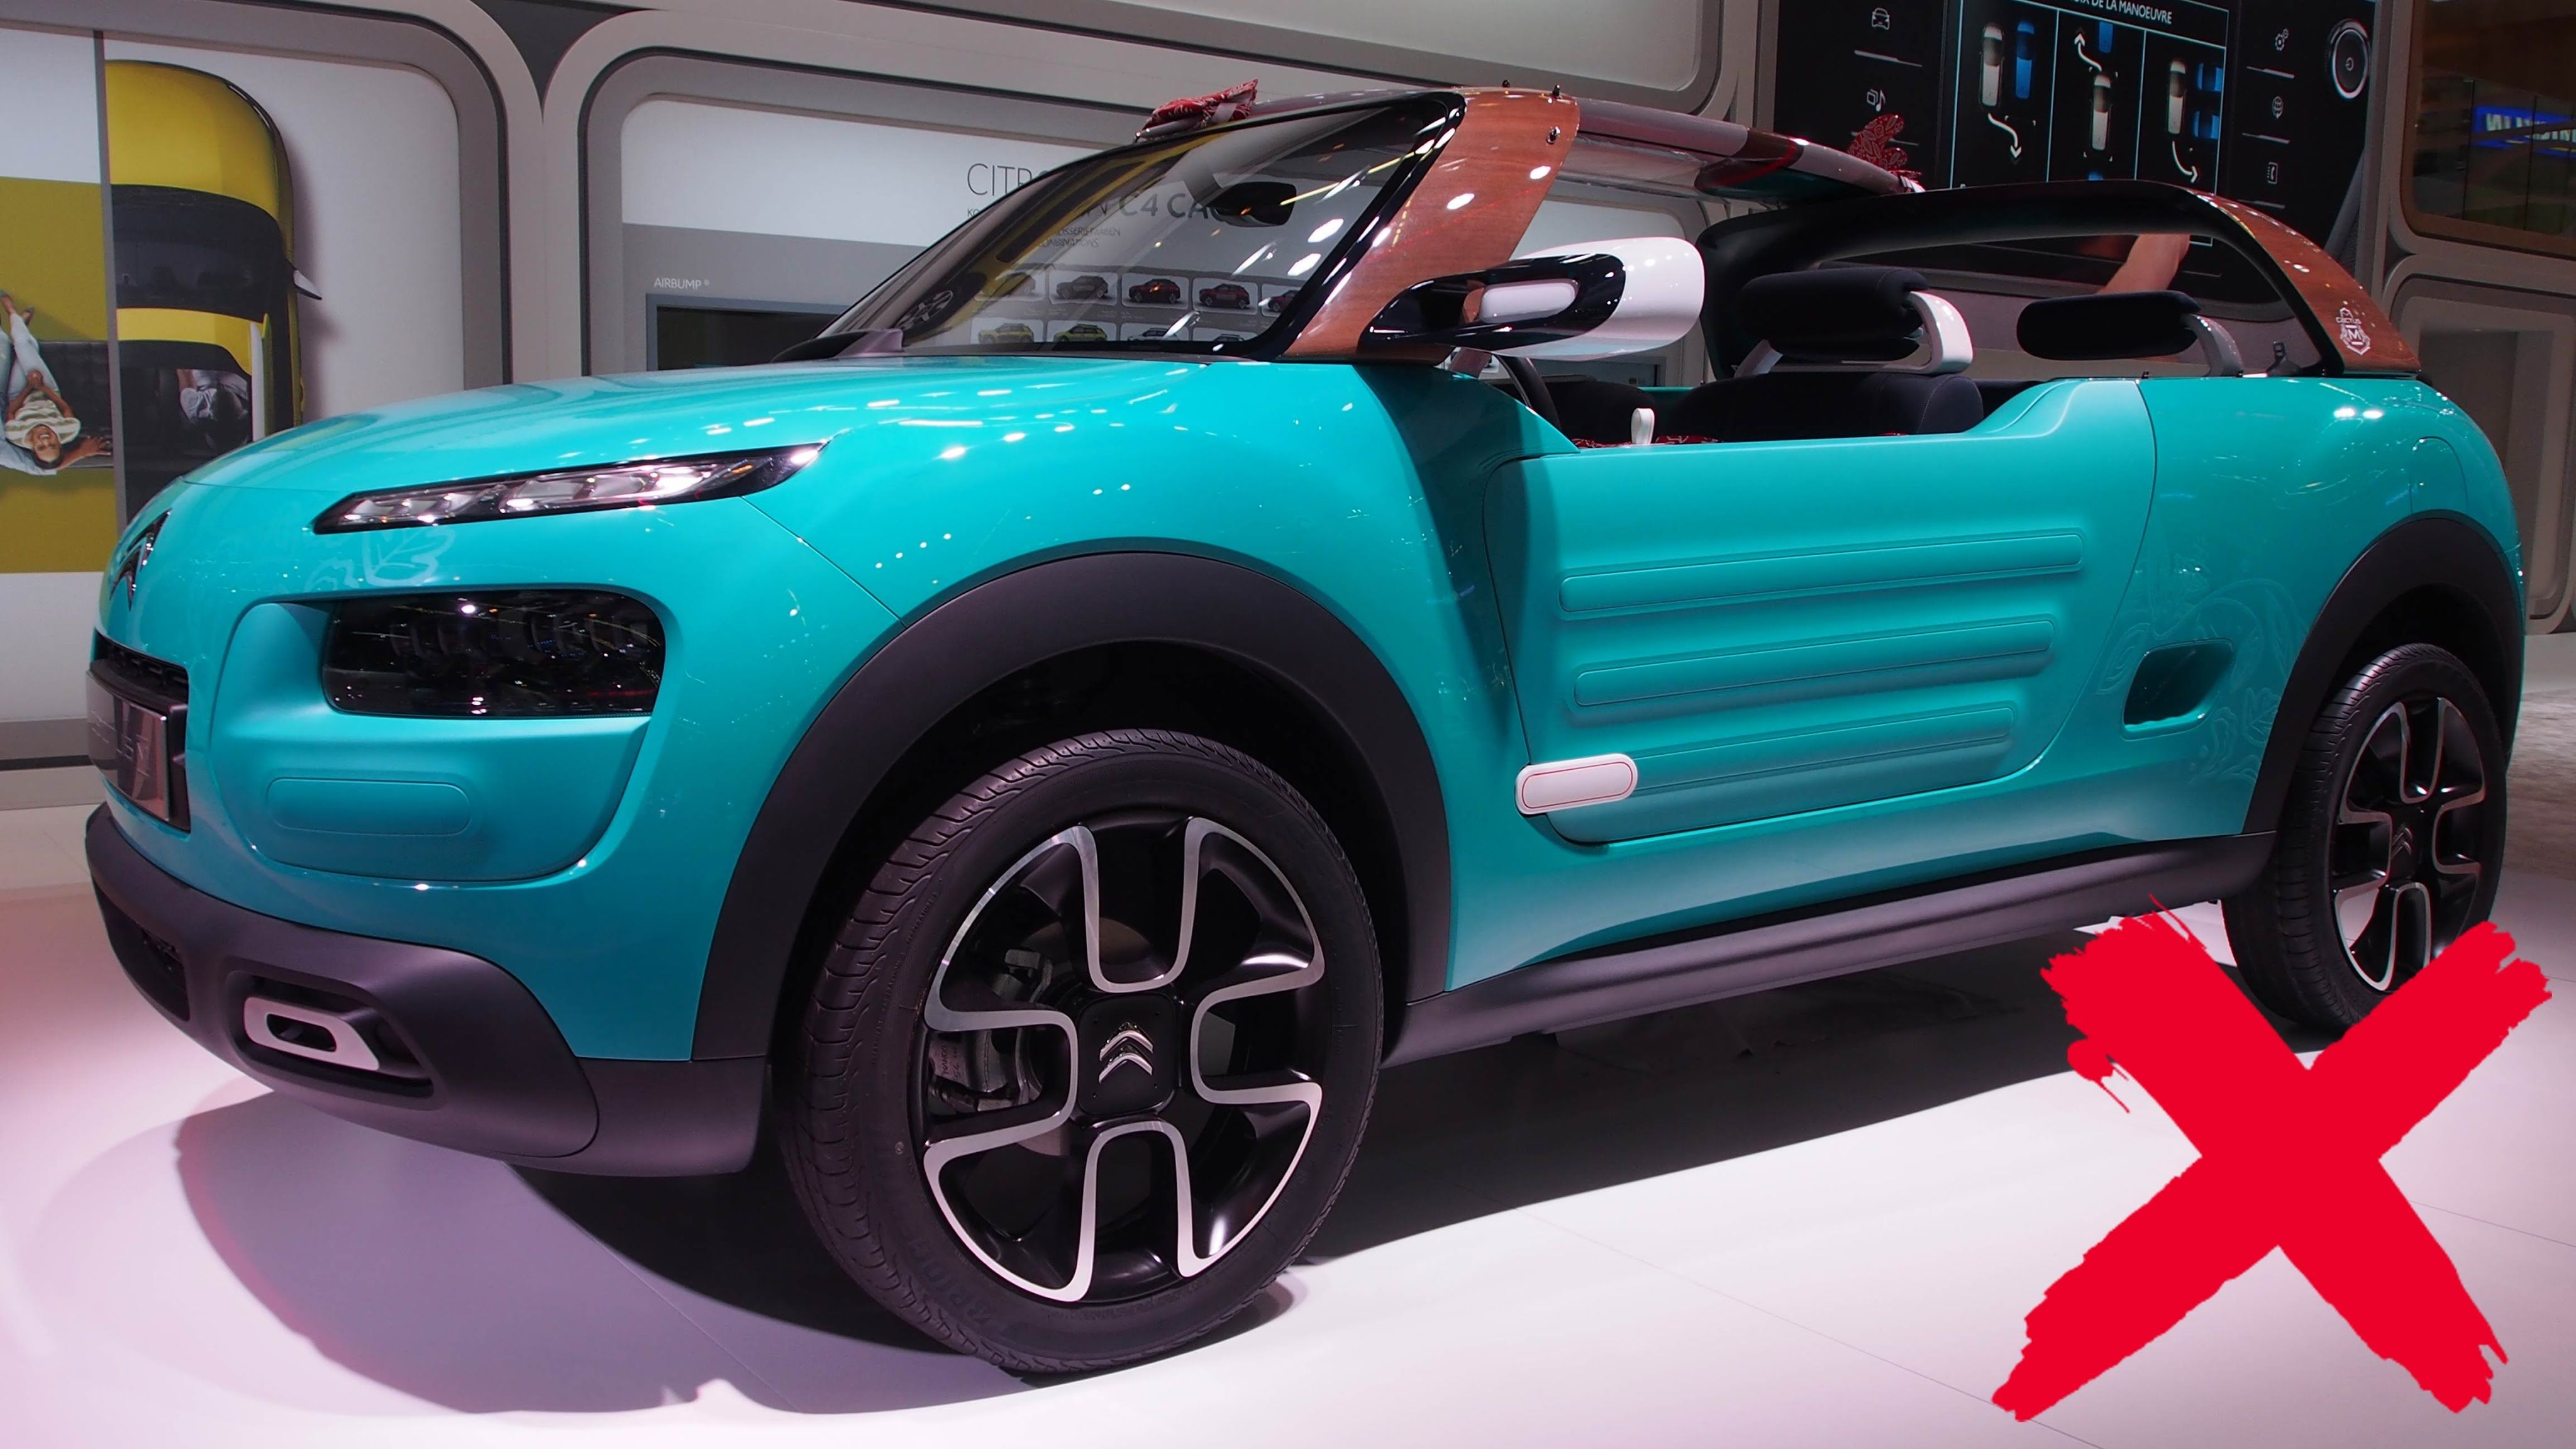 2016 Citroen Cactus M Concept -  Exterior and Interior Walkaround